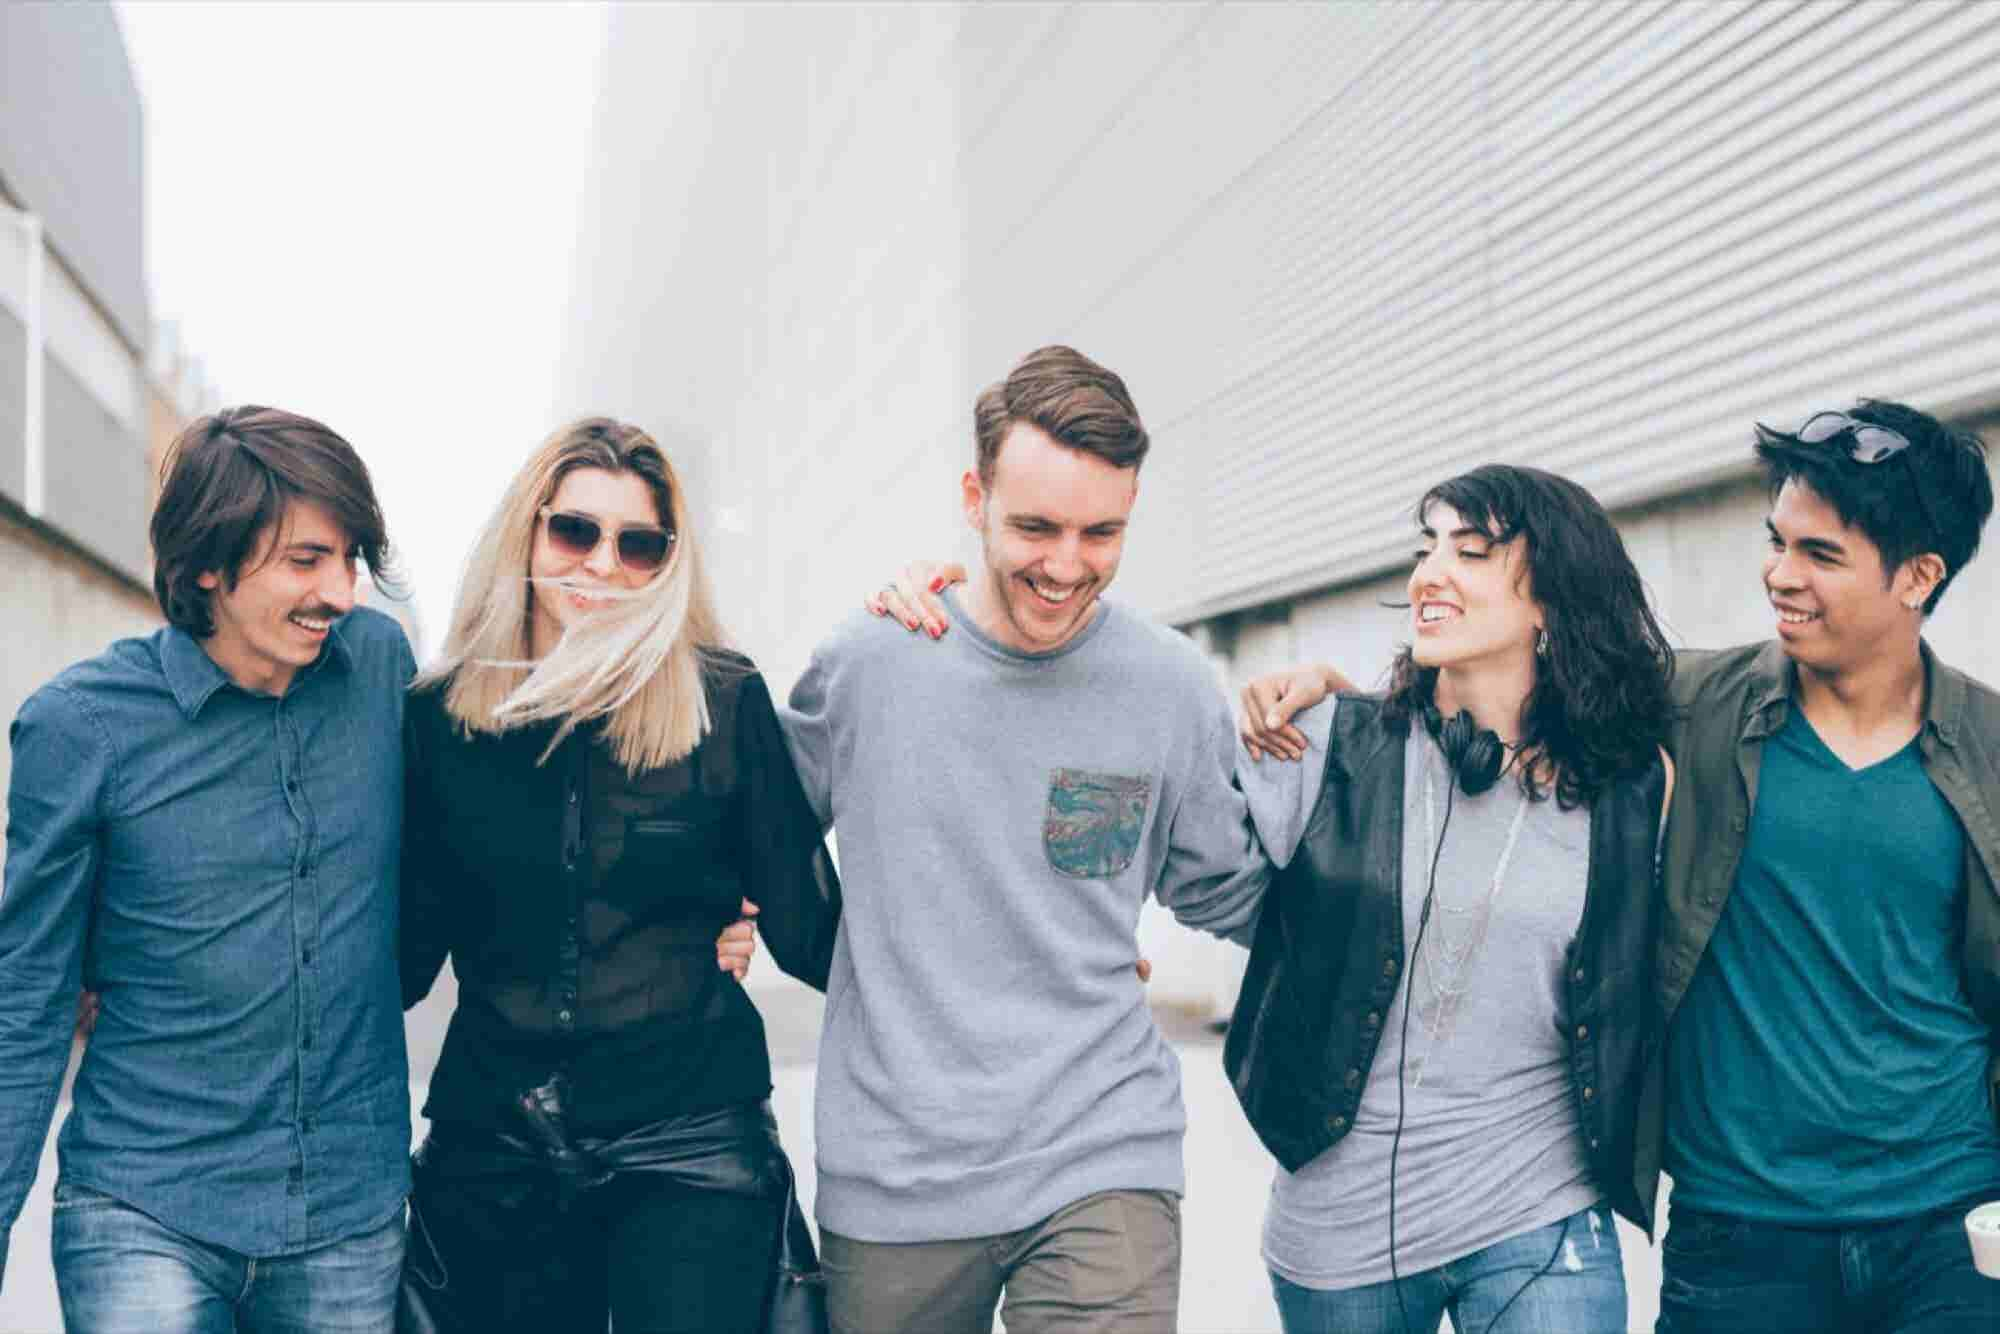 Marketing To Millennials: Building A Communications Strategy